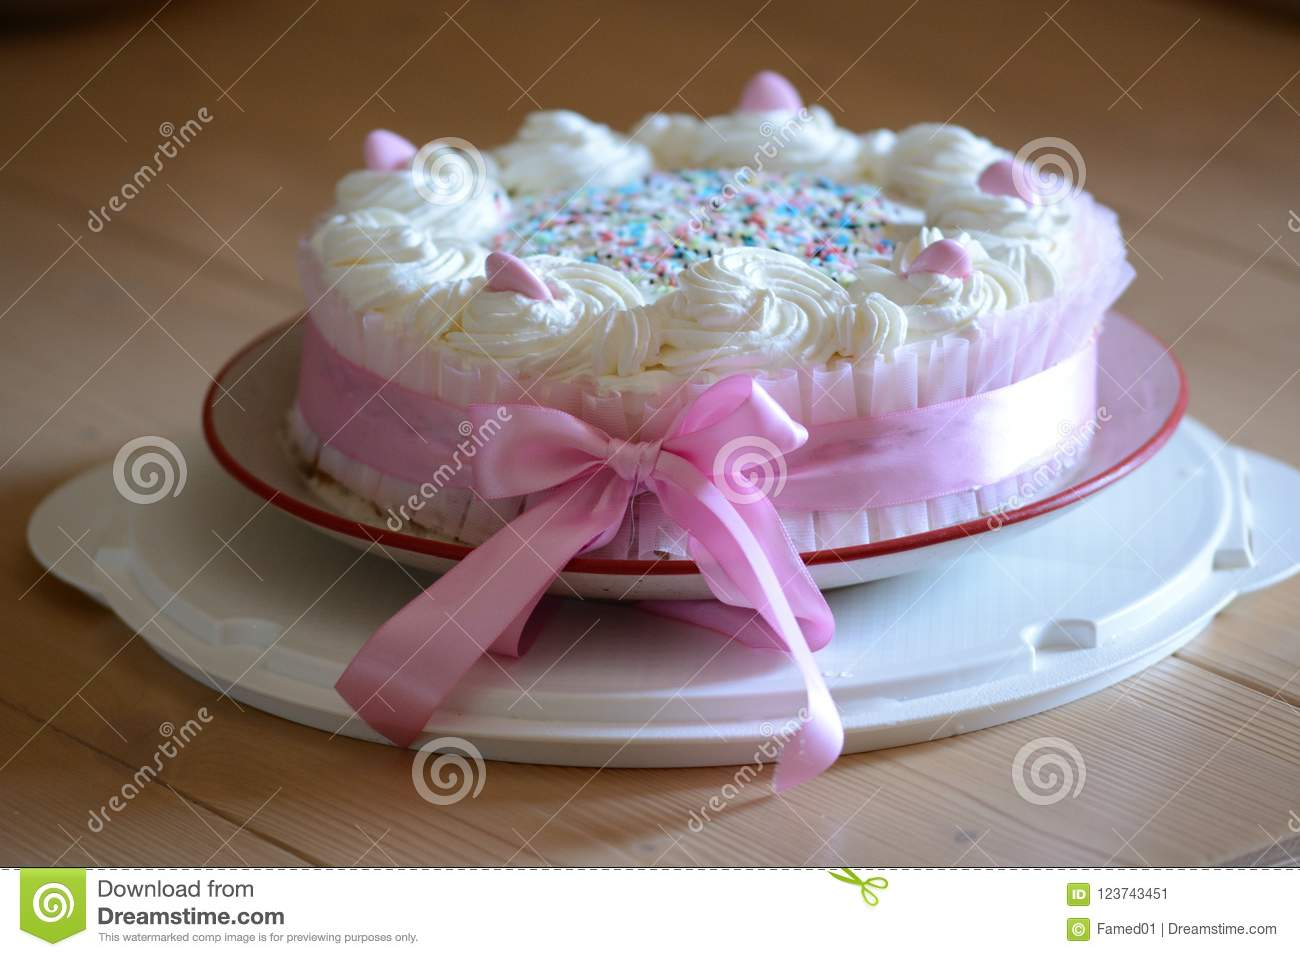 Homemade Birthday Cake With Pink Sugared Almonds And Whipped Cream